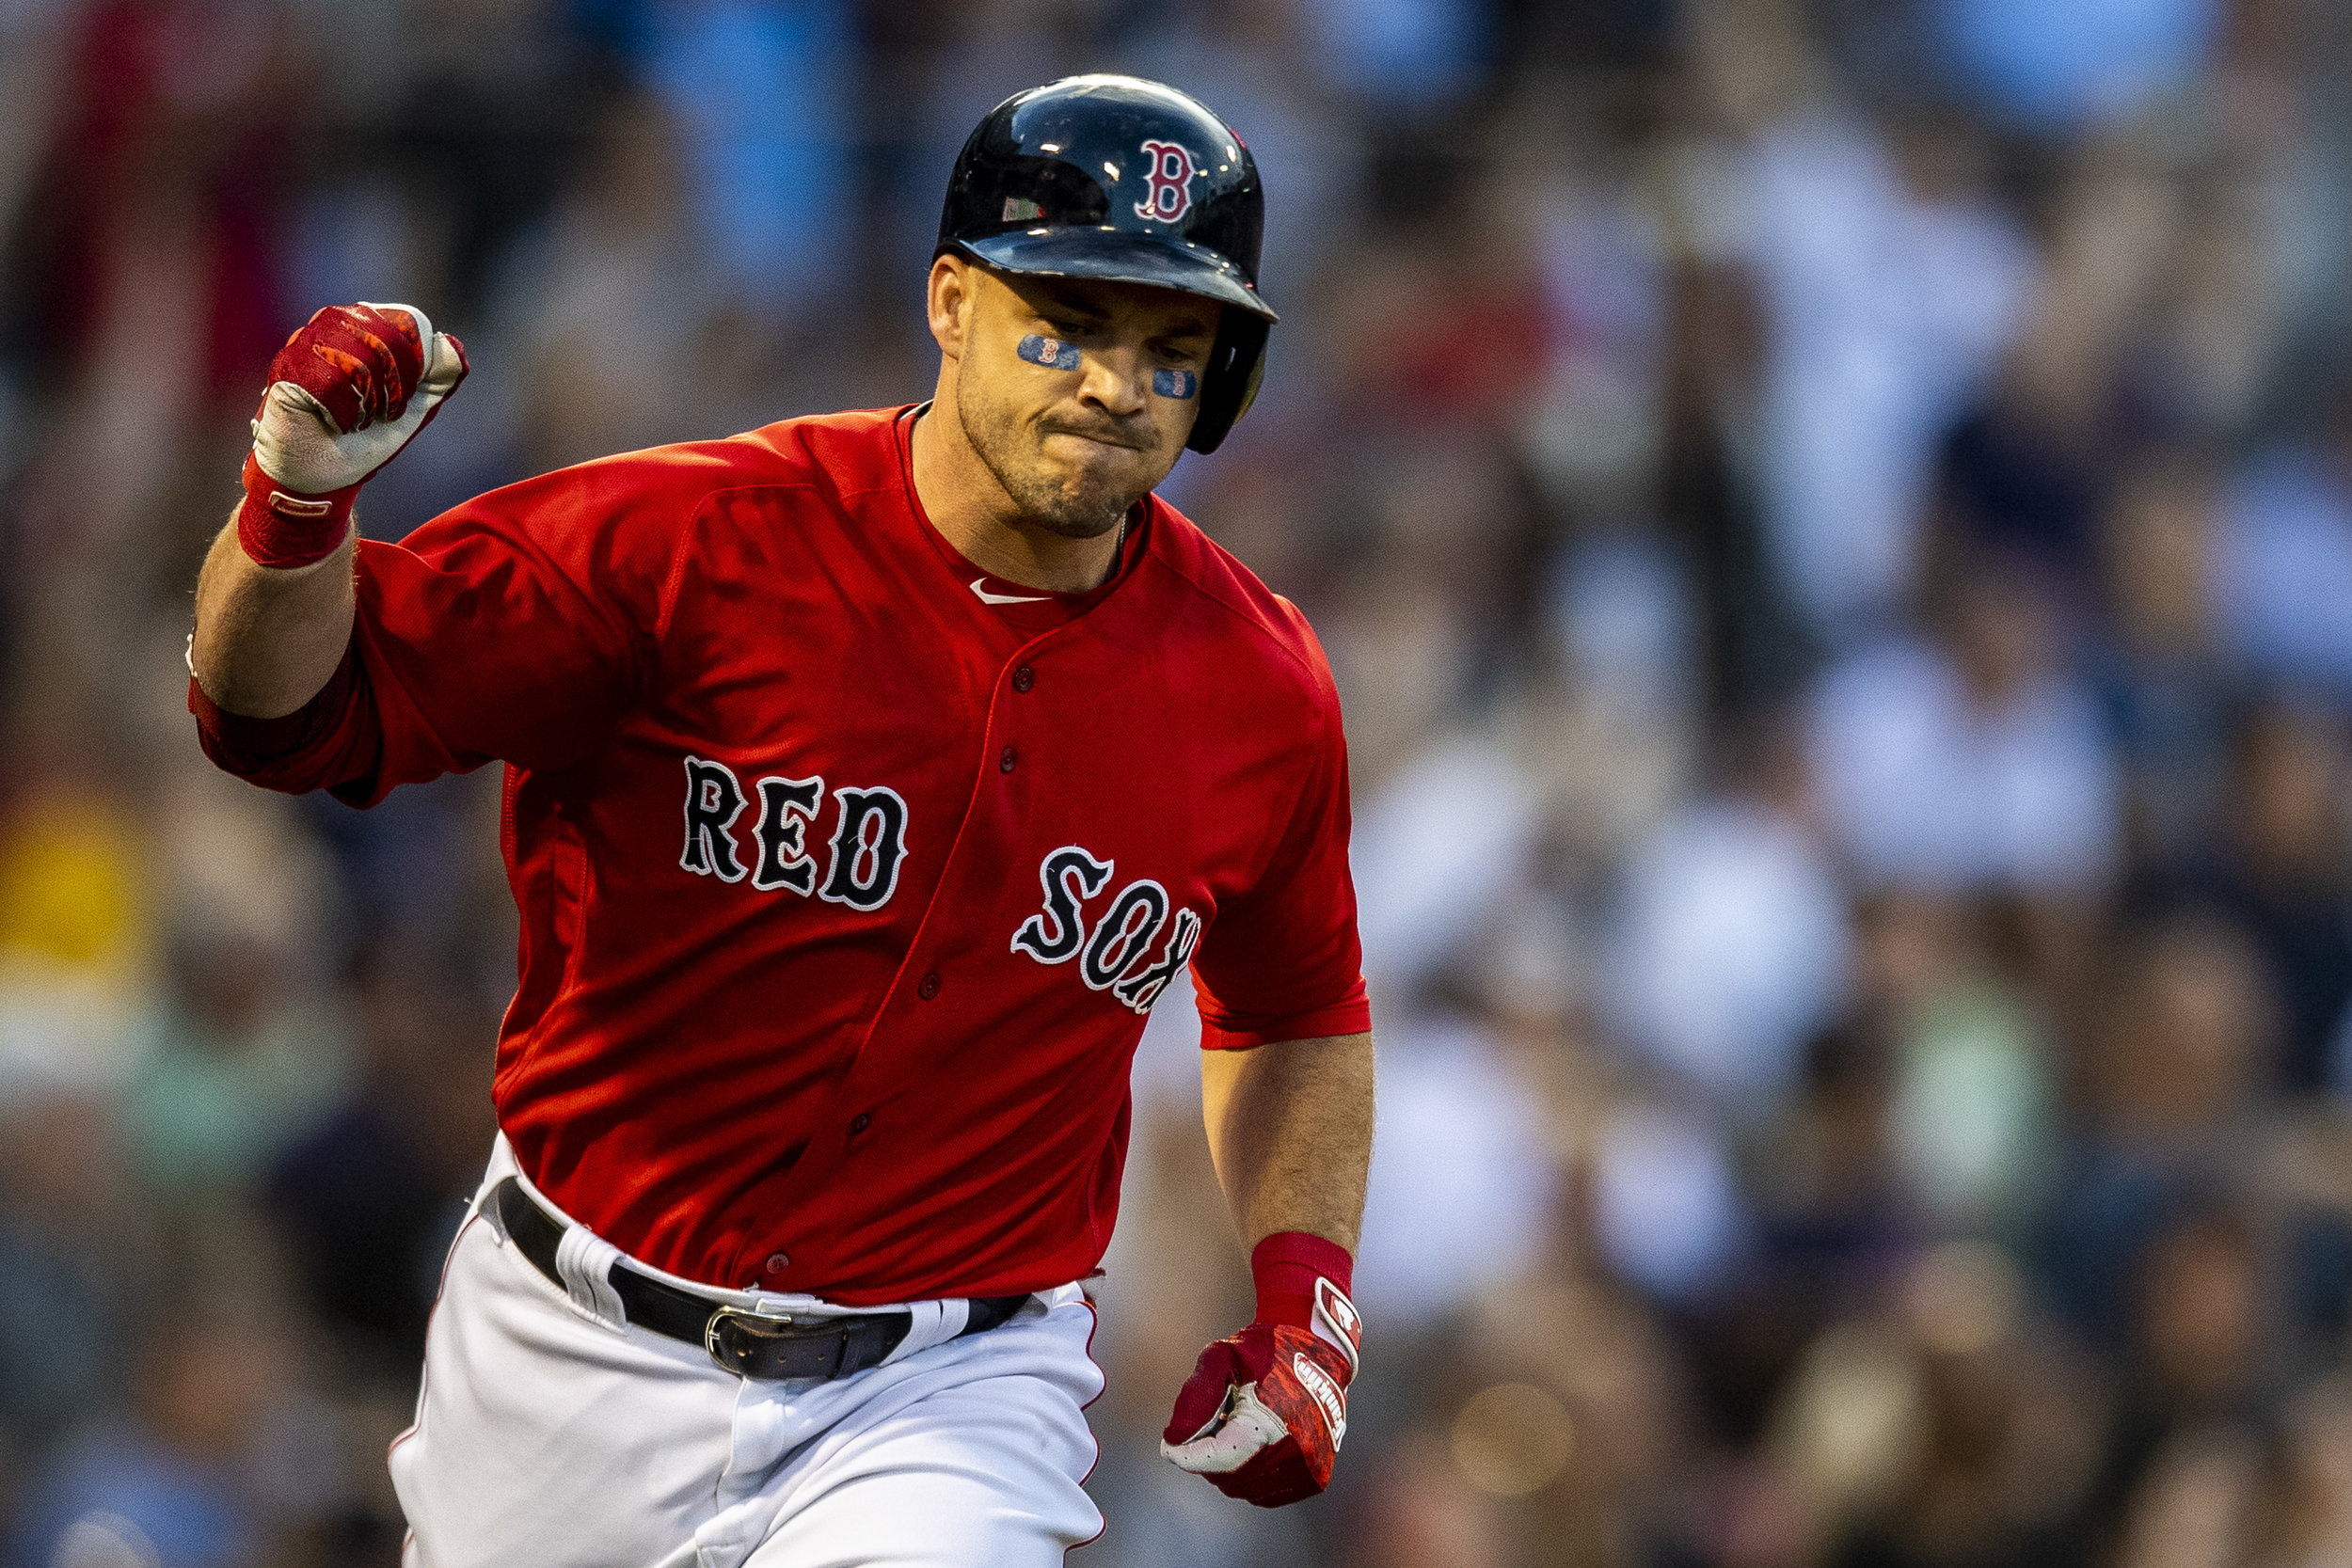 August 3, 2018, Boston, MA: Boston Red Sox infielder Steve Pearce pumps his fist after hitting a home run as the Boston Red Sox face the New York Yankees at Fenway Park in Boston, Massachusetts on Friday, August 3, 2018. (Photo by Matthew Thomas/Boston Red Sox)